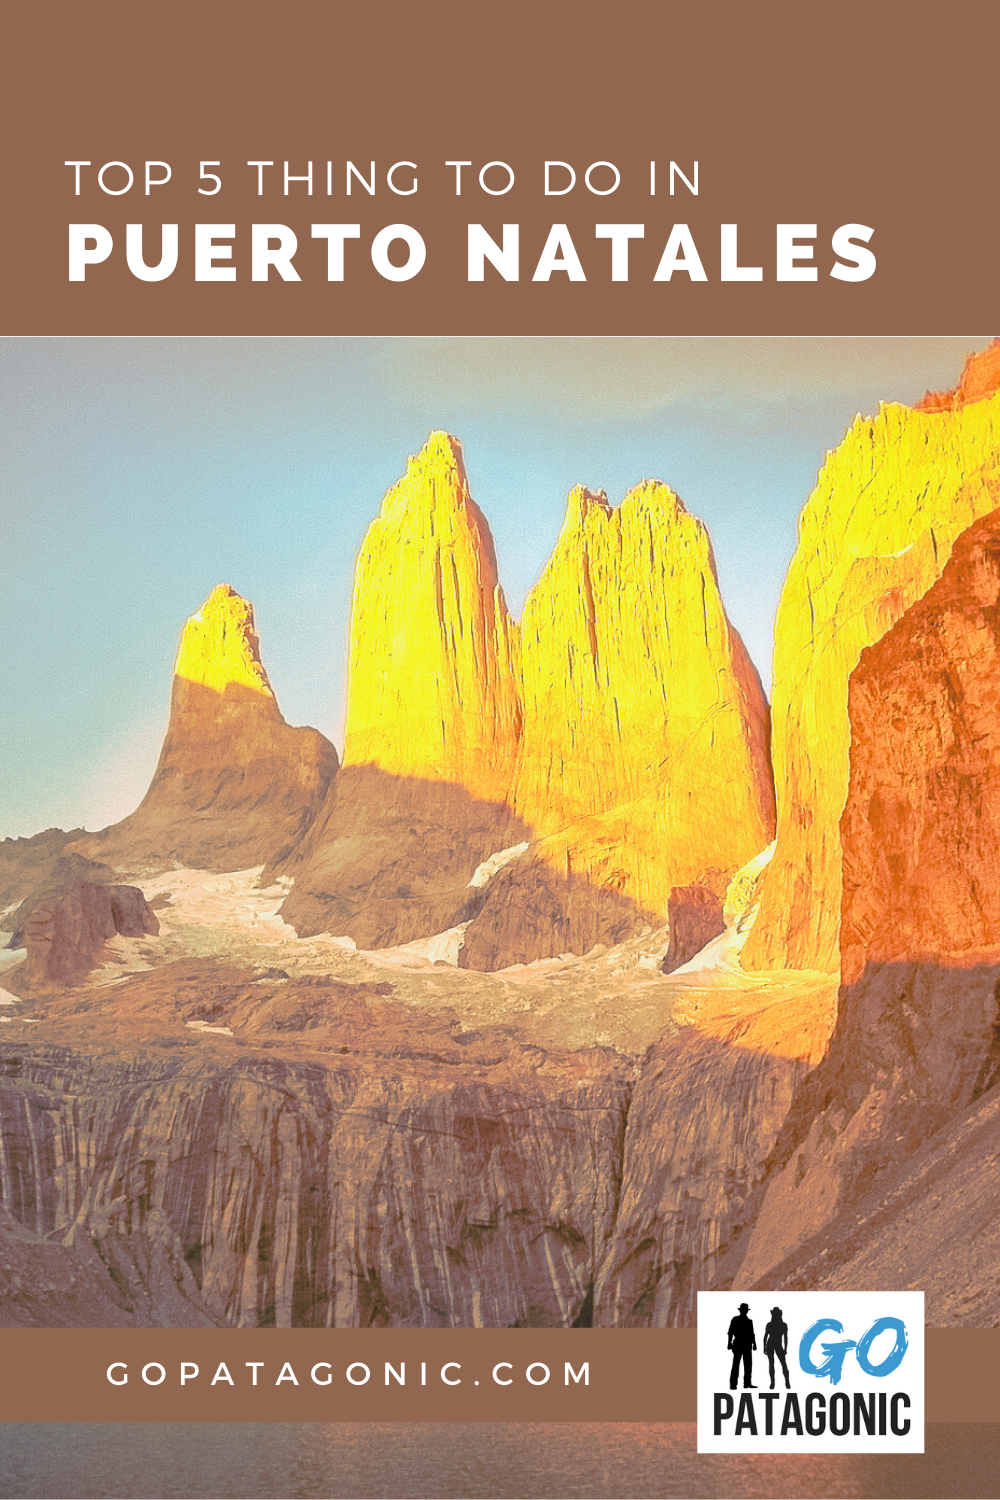 Things to do in Puerto Natales